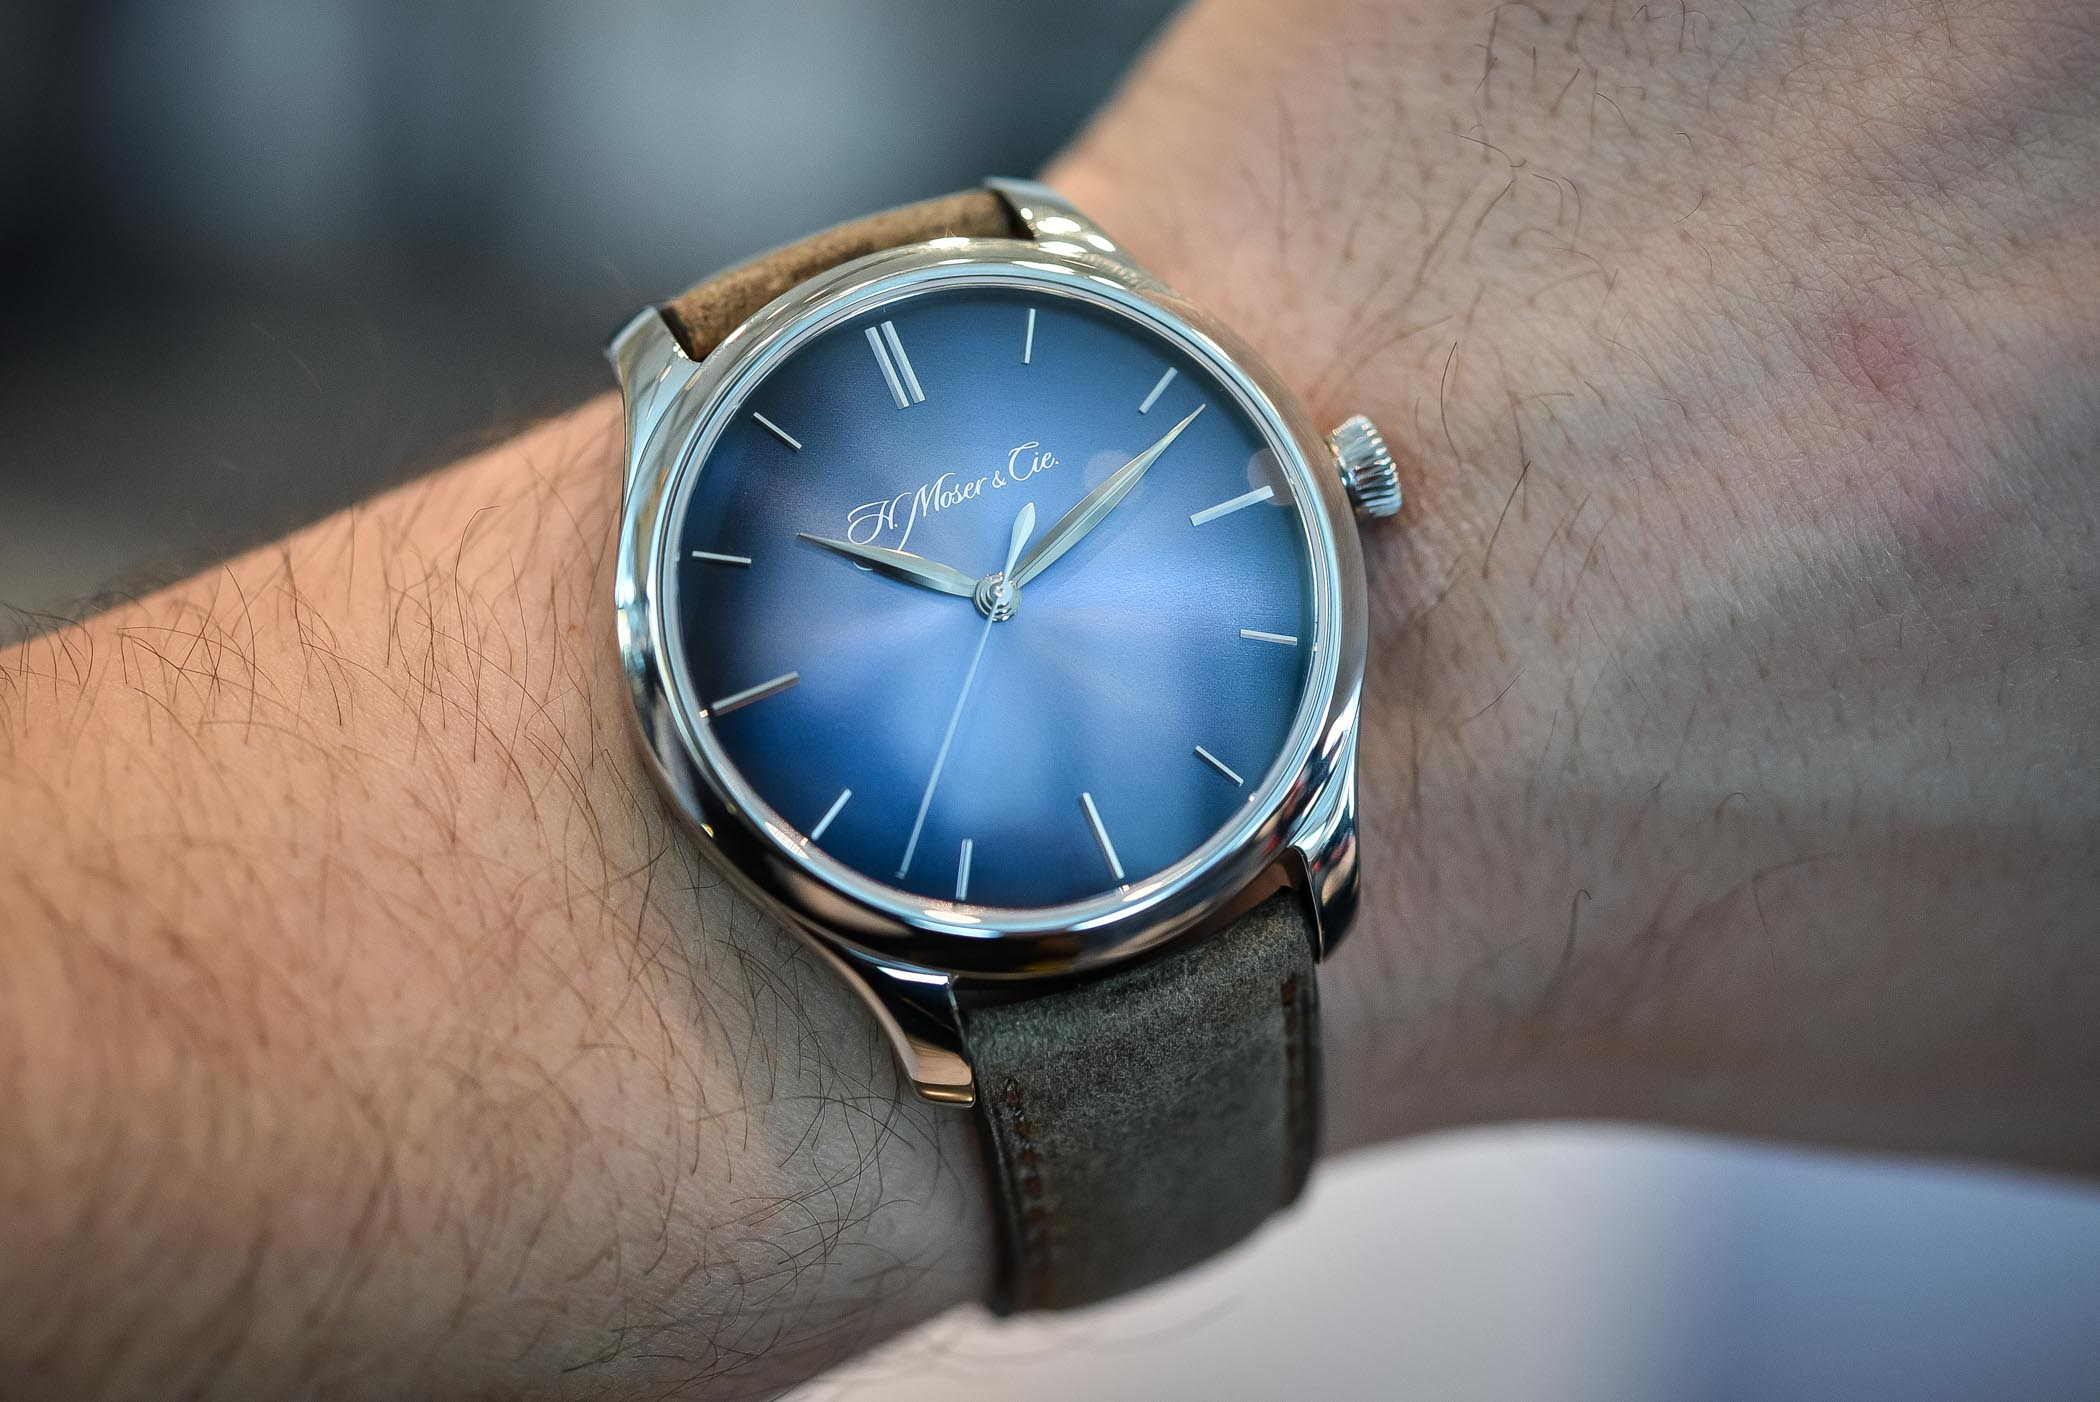 H. Moser & Cie Endeavour Center Seconds